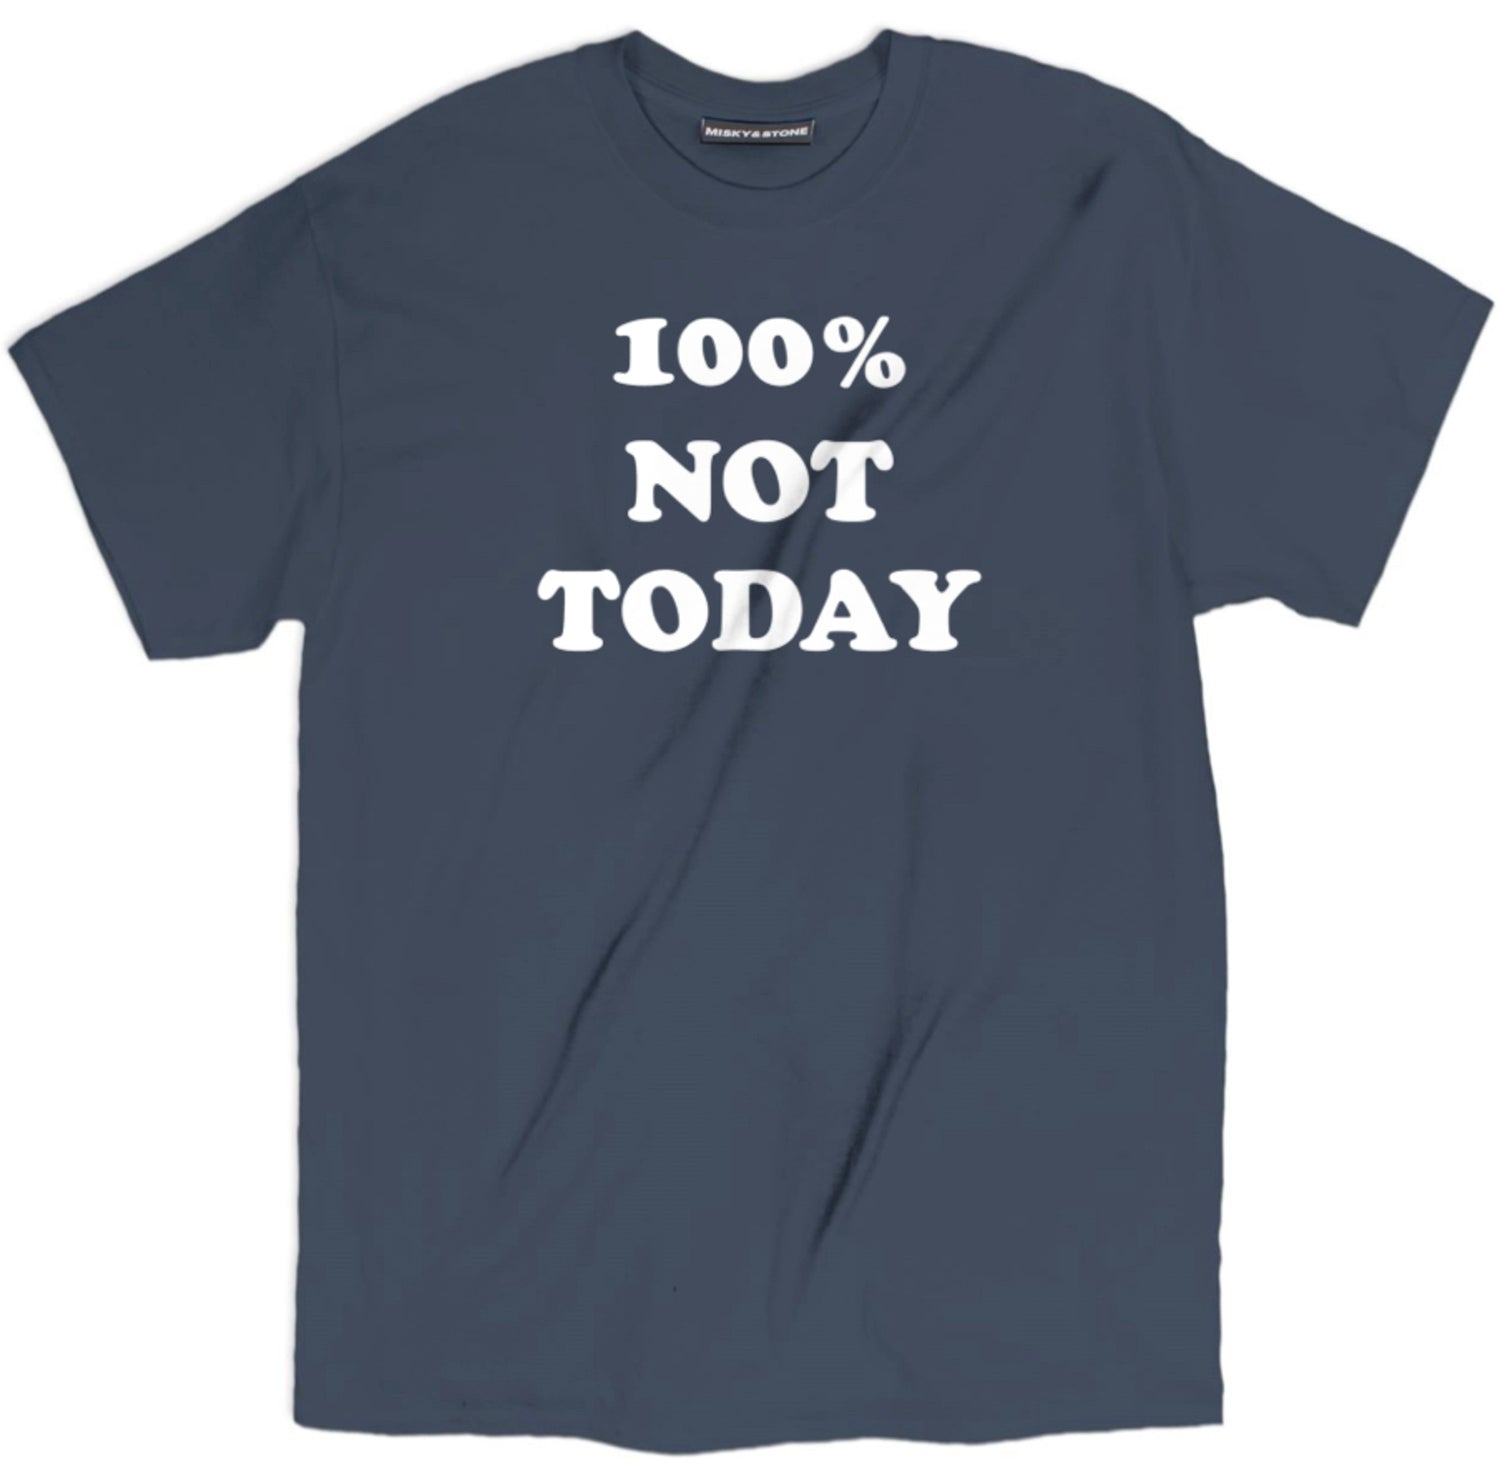 not today shirt, nope not today shirt, funny shirts with sayings, funny t shirt sayings, shirts with sayings, funny t shirt quotes, t shirt quotes, tee shirts with sayings, tee shirt quotes, quote tees, hilarious t shirt sayings, funny tee shirt sayings, t shirts with sayings on them,